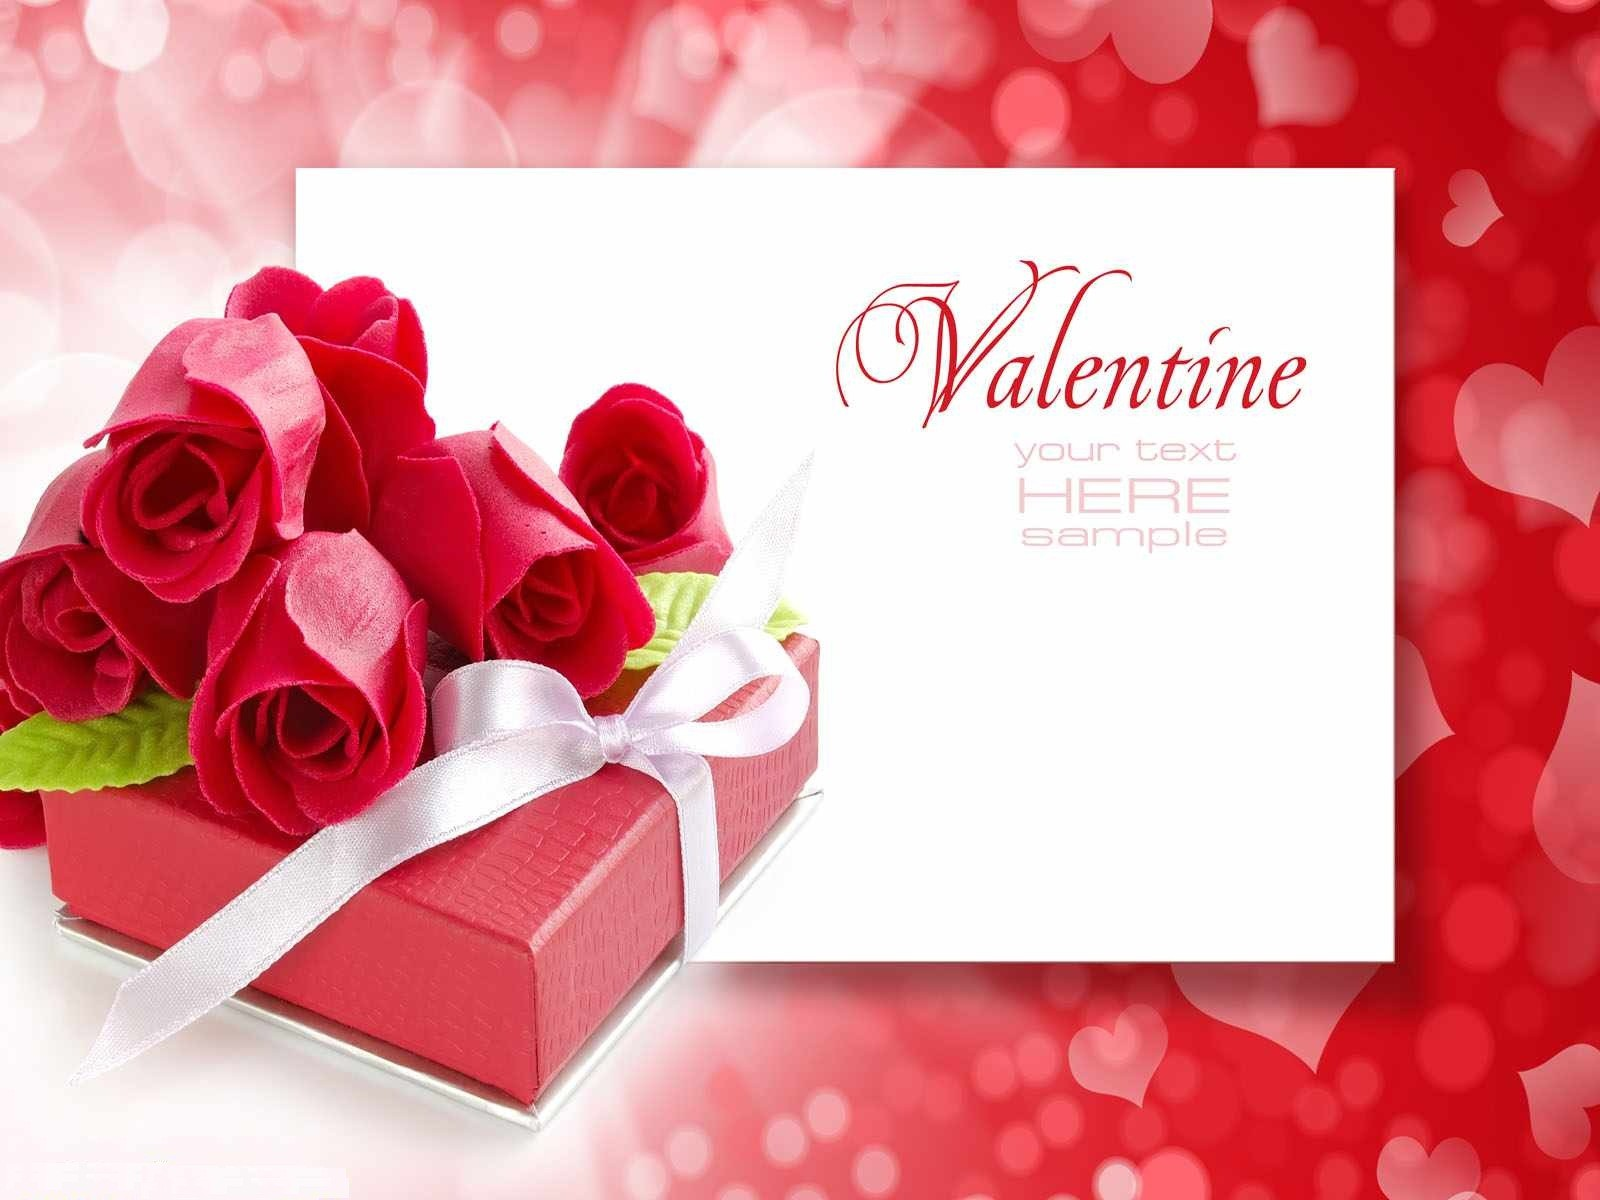 Happy Valentine Day Greeting Card 2015 Wallpaper Cool Images 1600x1200